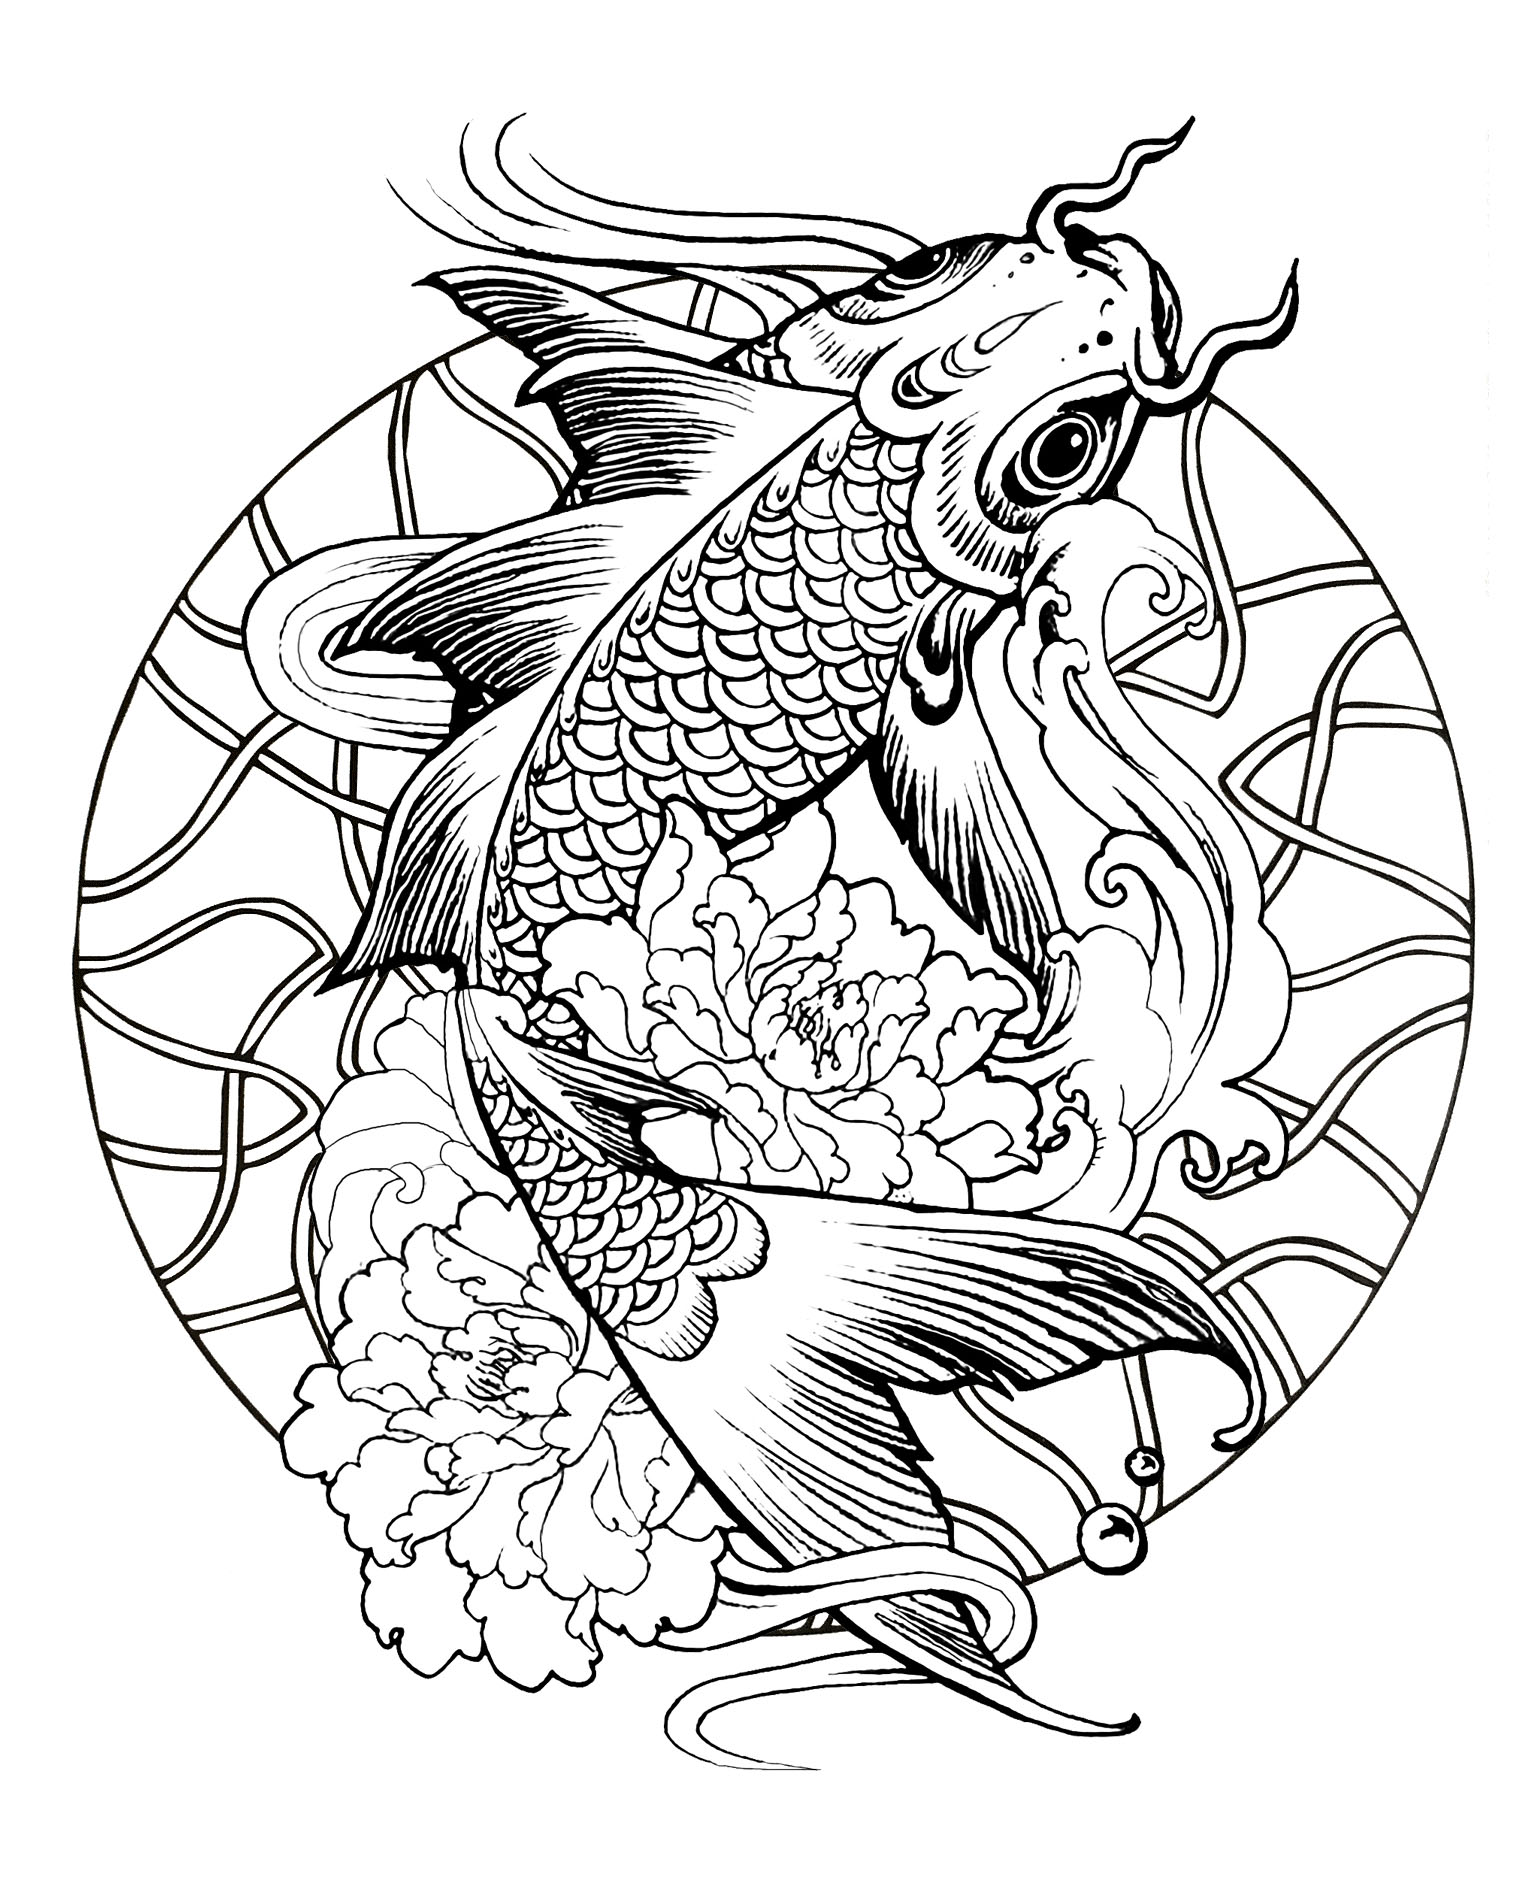 Mandala coloring pages easter - A Simple Mandala With A Giant Fish Carp